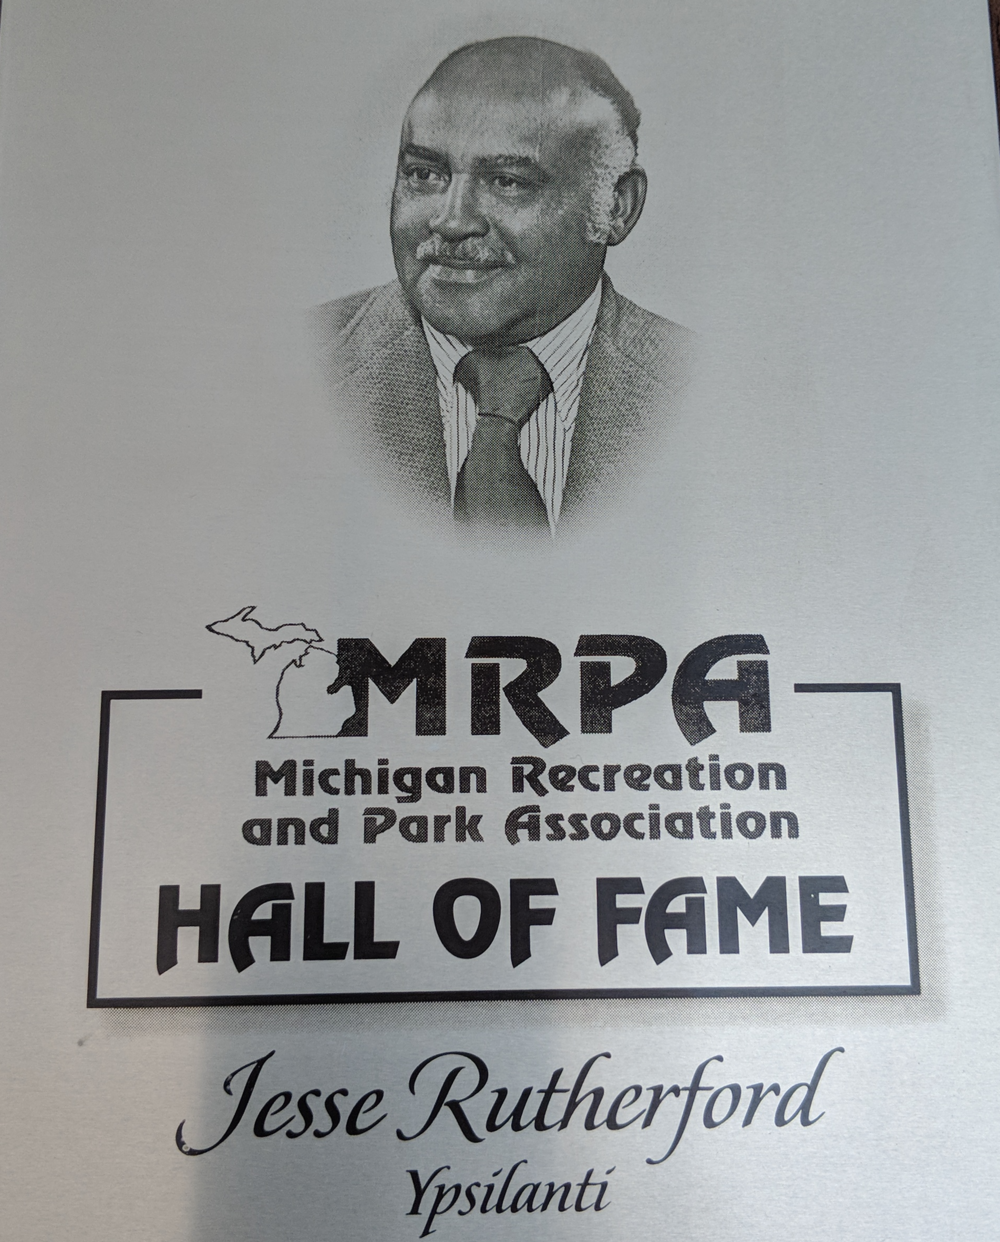 Jesse A. Rutherford, namesake for Rutherford Pool